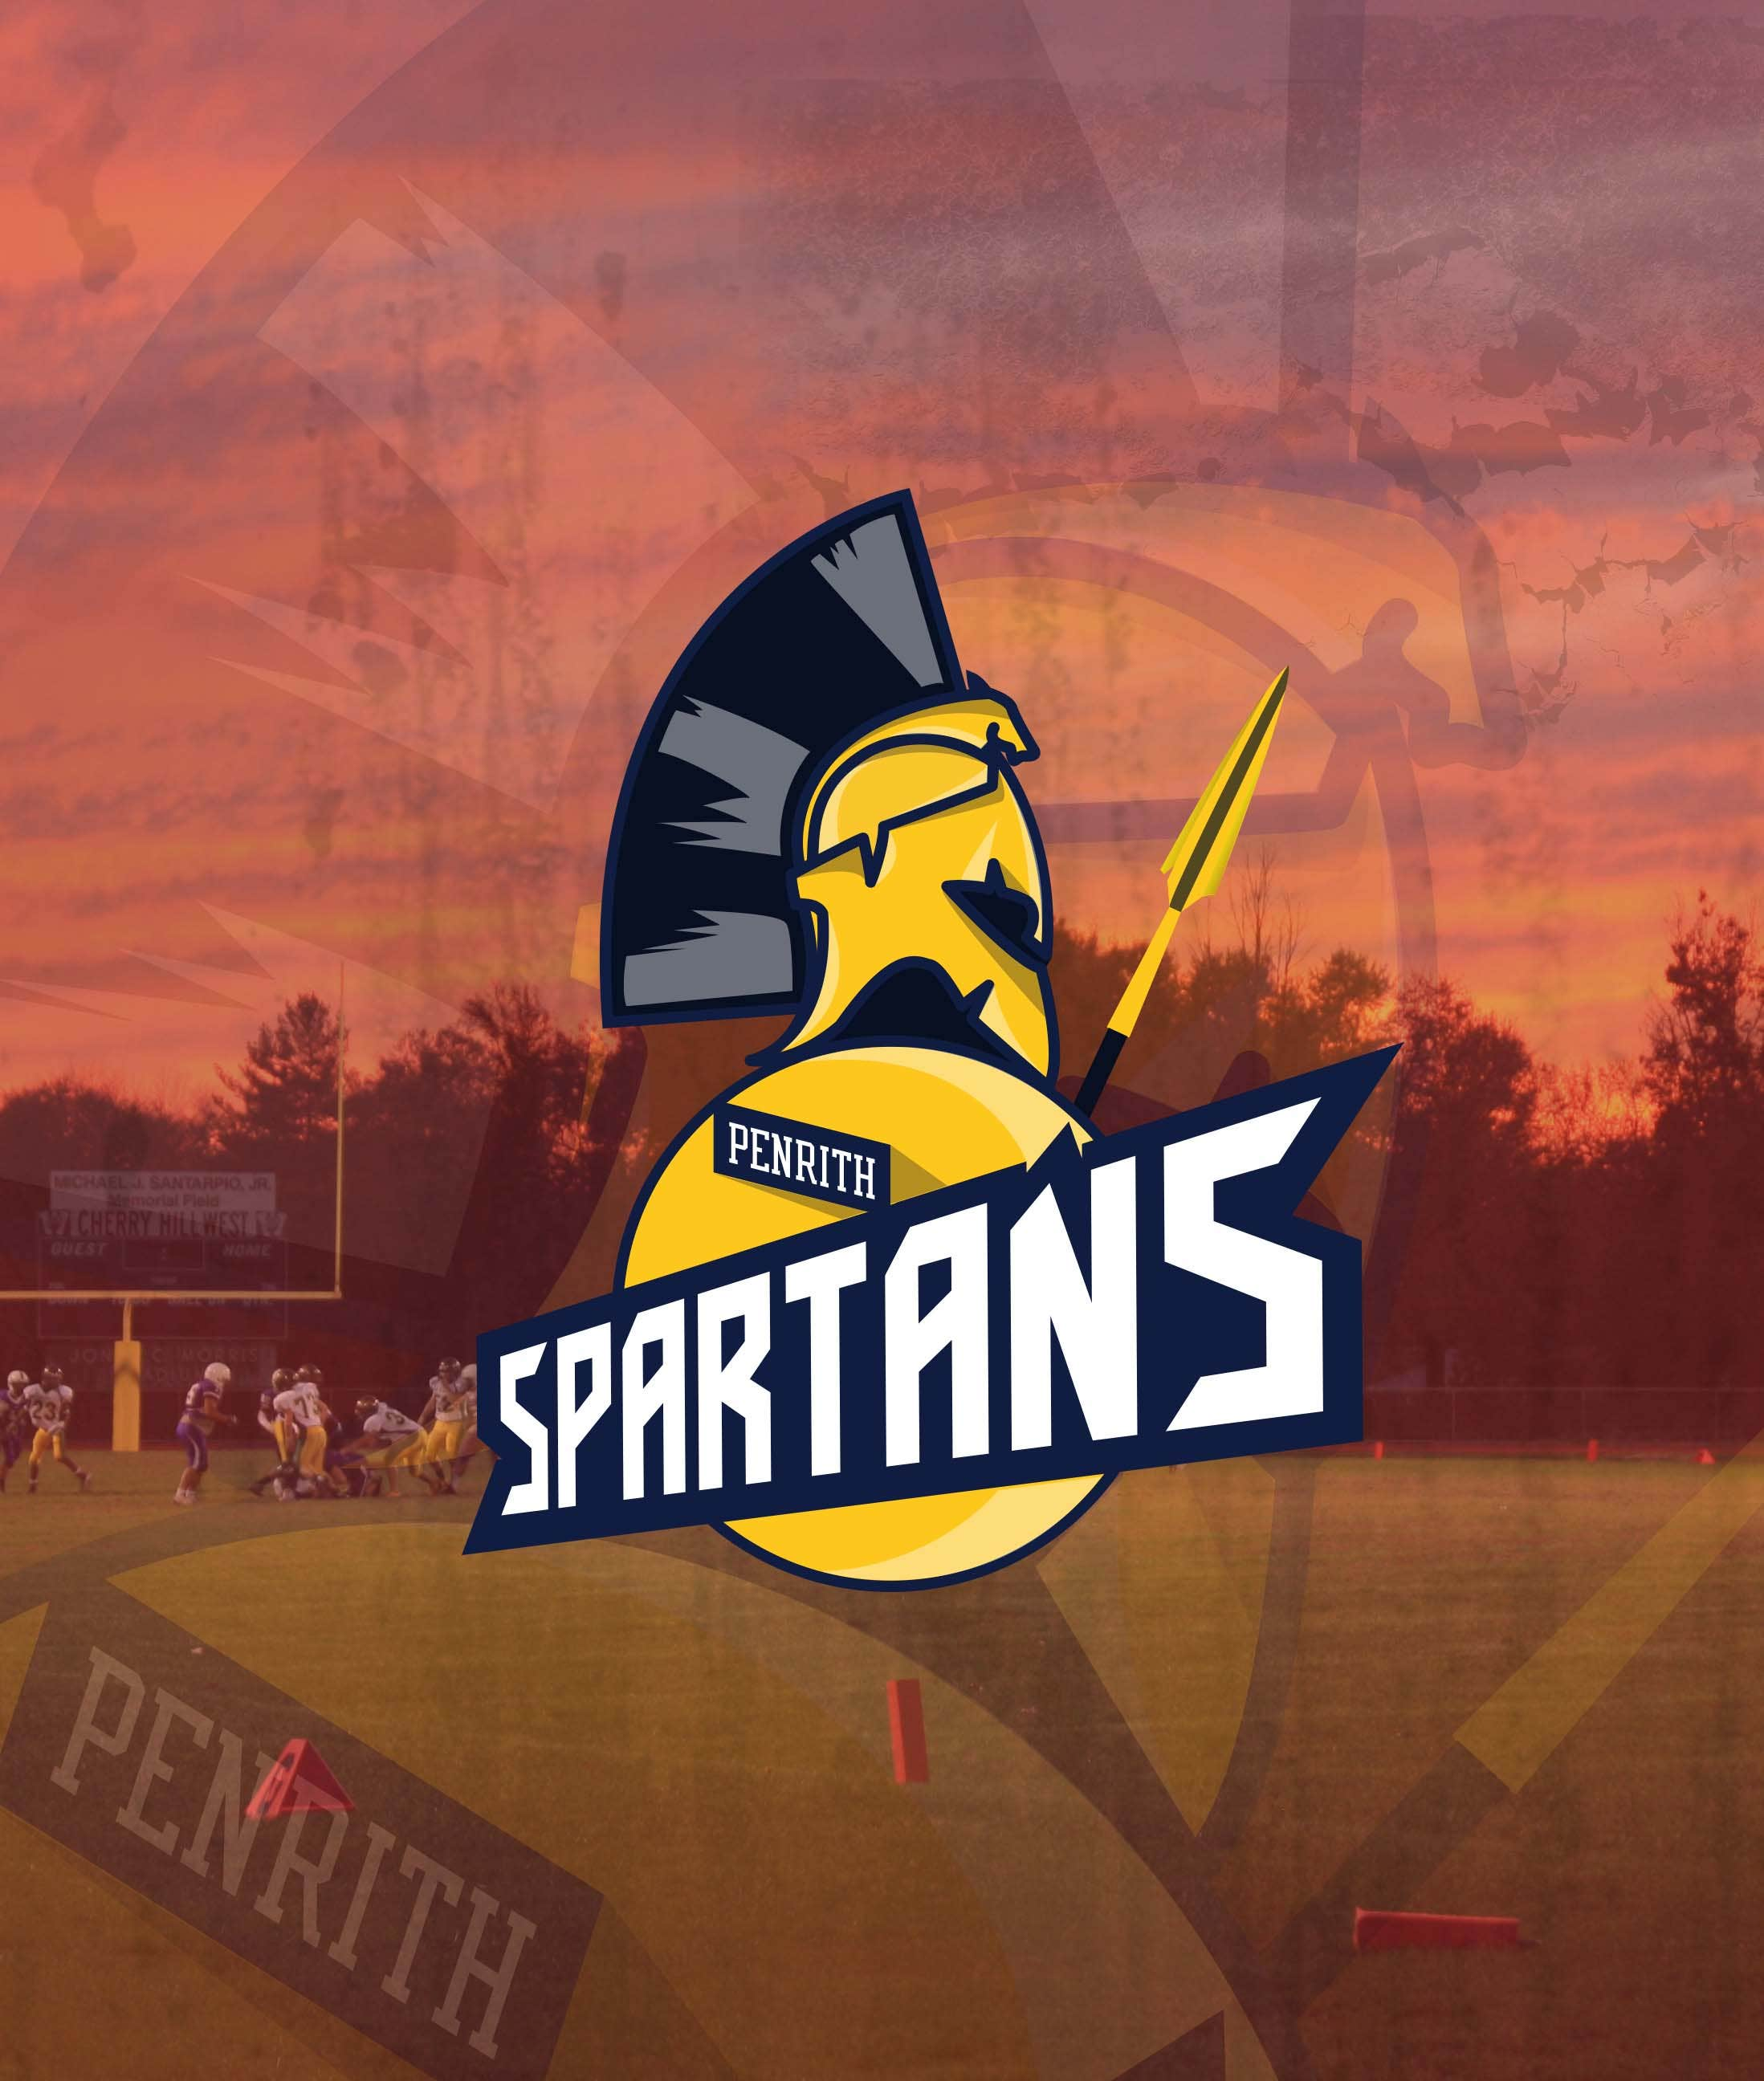 Penrith Spartans